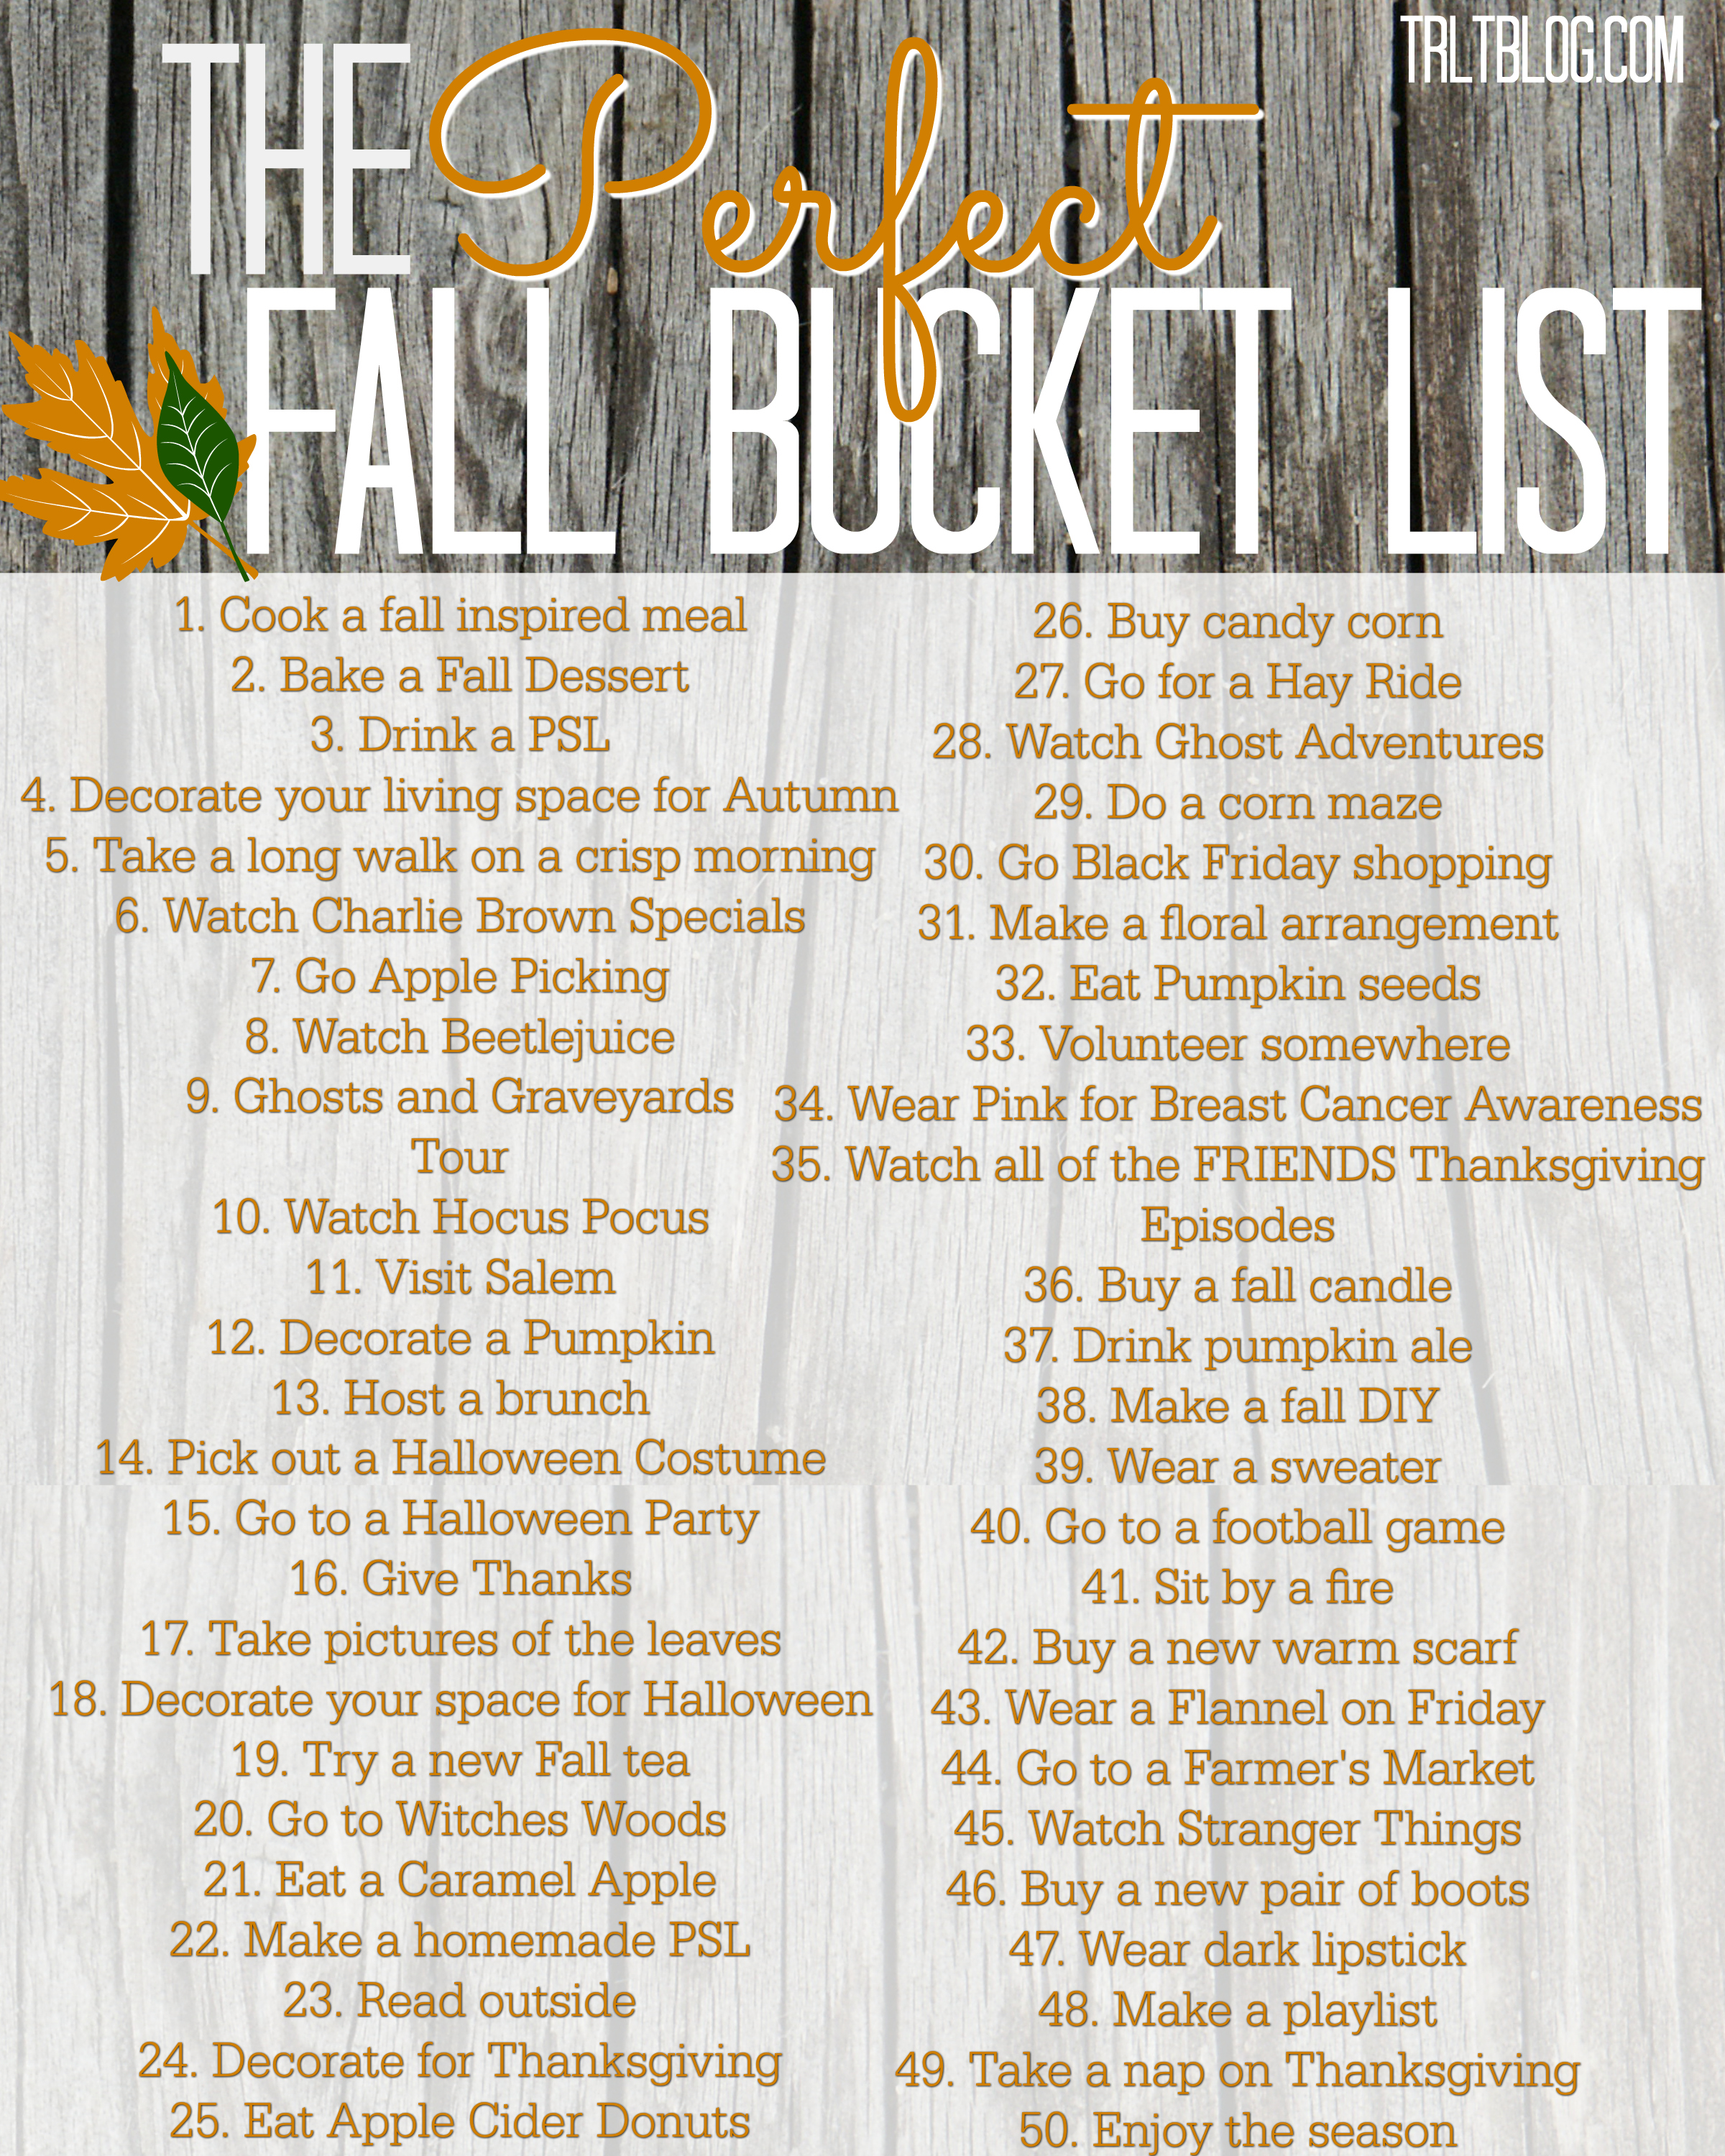 The Perfect Fall Bucket List.jpg